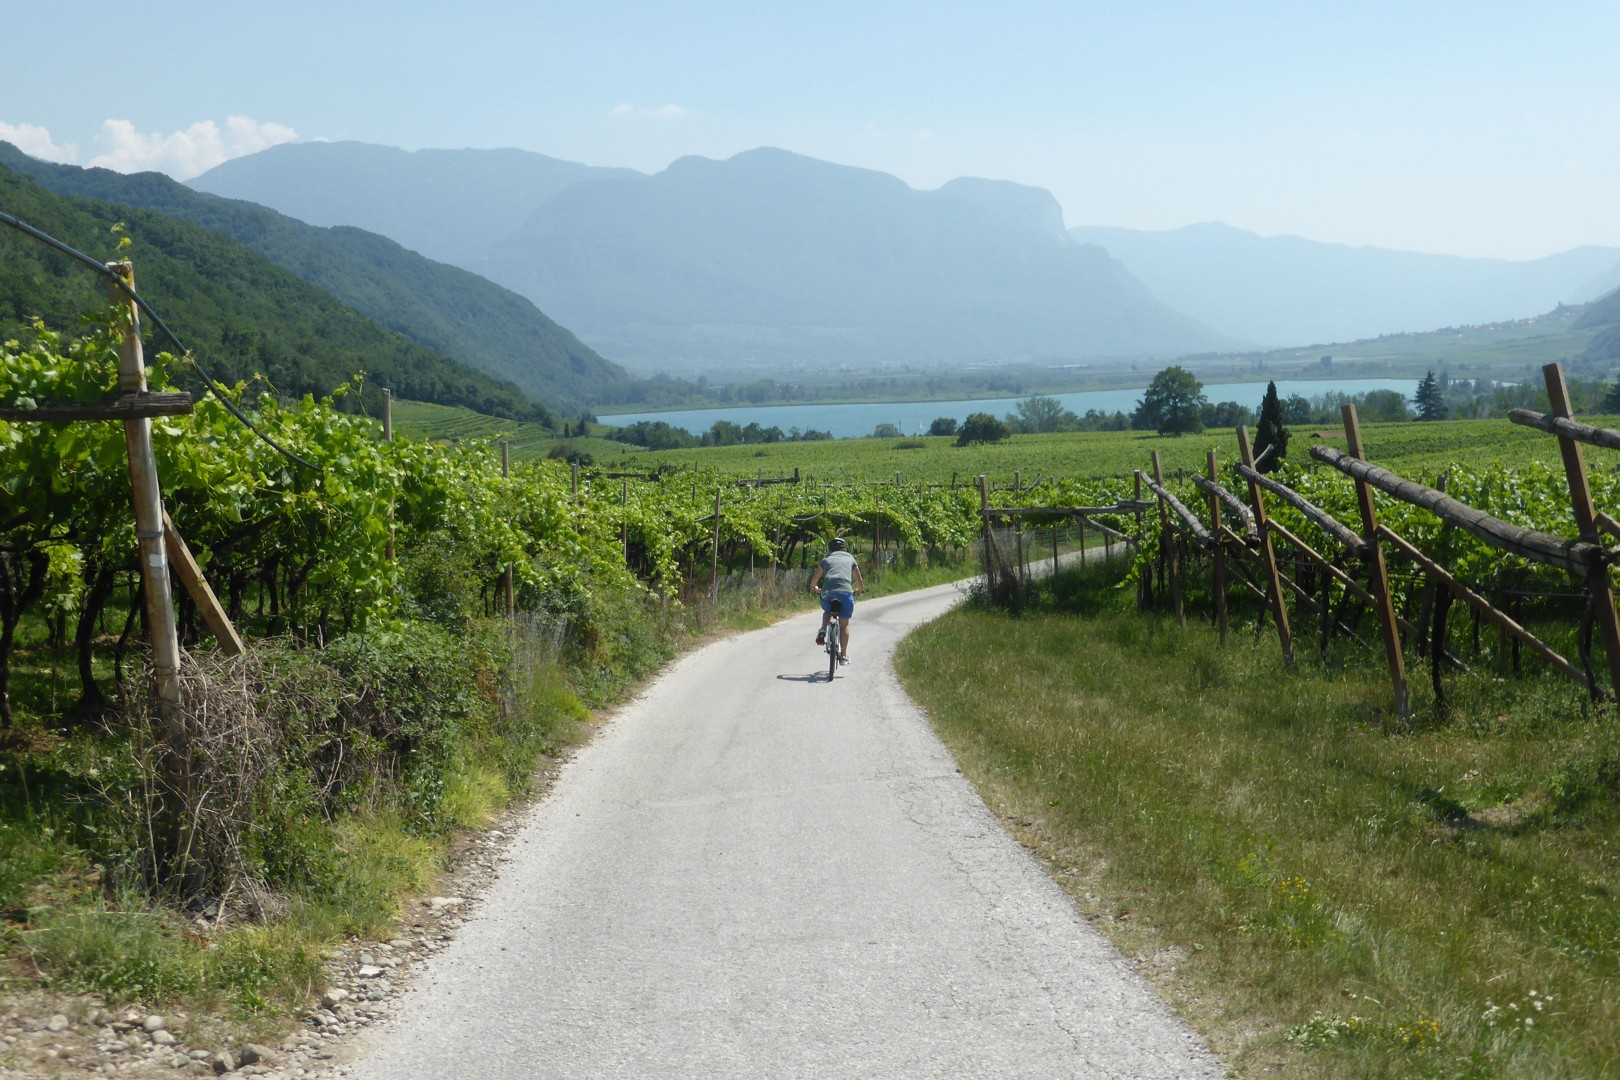 italy-supported-cycling.jpg - Northern Italy - Gentle Via Claudia - Supported Family Cycling Holiday - Italia Leisure and Family Cycling